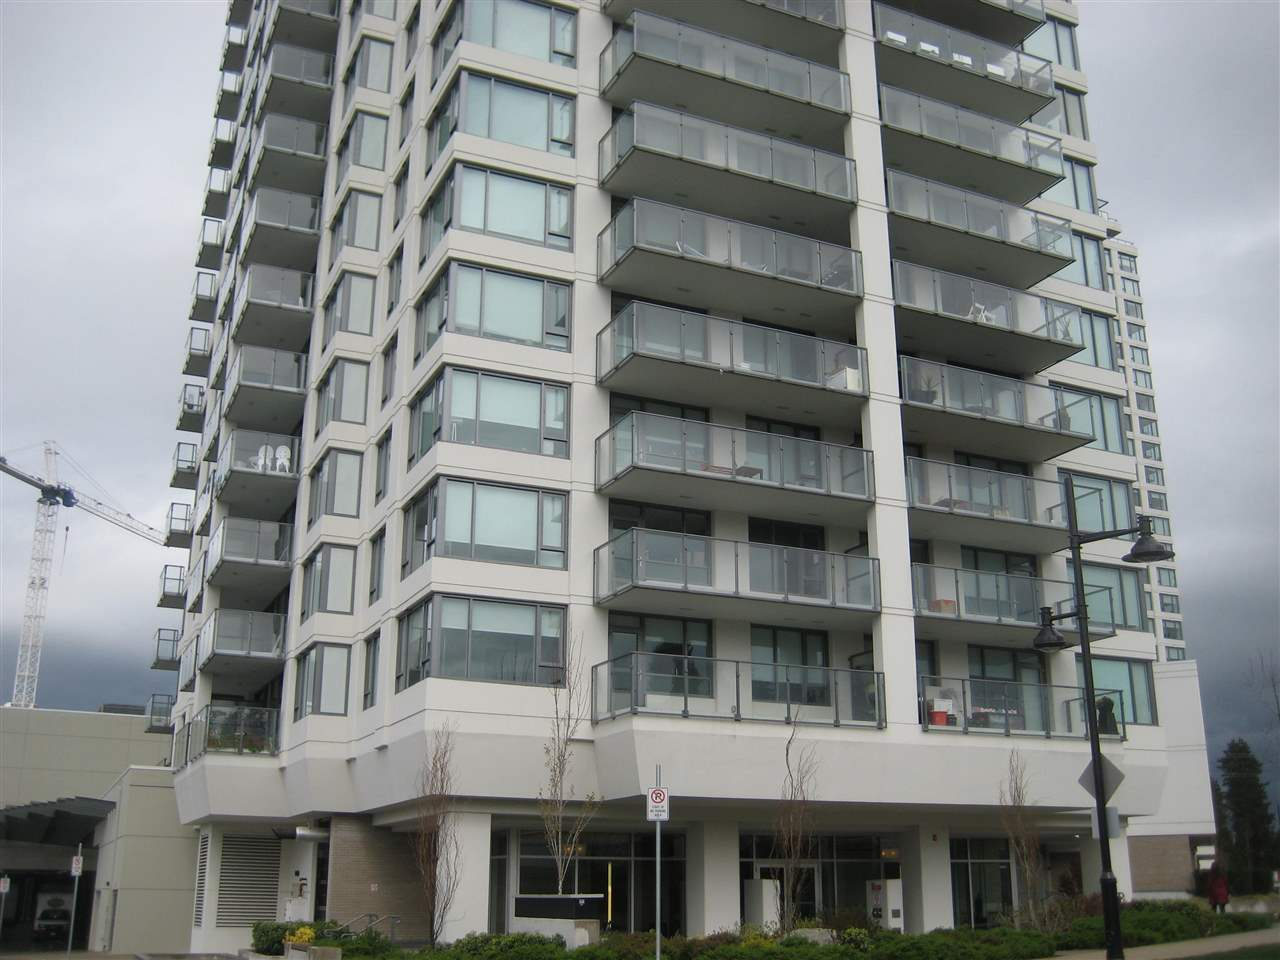 Great location, walk to the Mall, Skytrain Station that provide perfect urban living style. Spacious kitchen with gas cooktop and granite countertop. Floor to ceiling window give you lots of natural lighting. West facing with partial Mountain view. One locker and one parking included. Rental allowed. Great for investor or starter home. Excellent value.